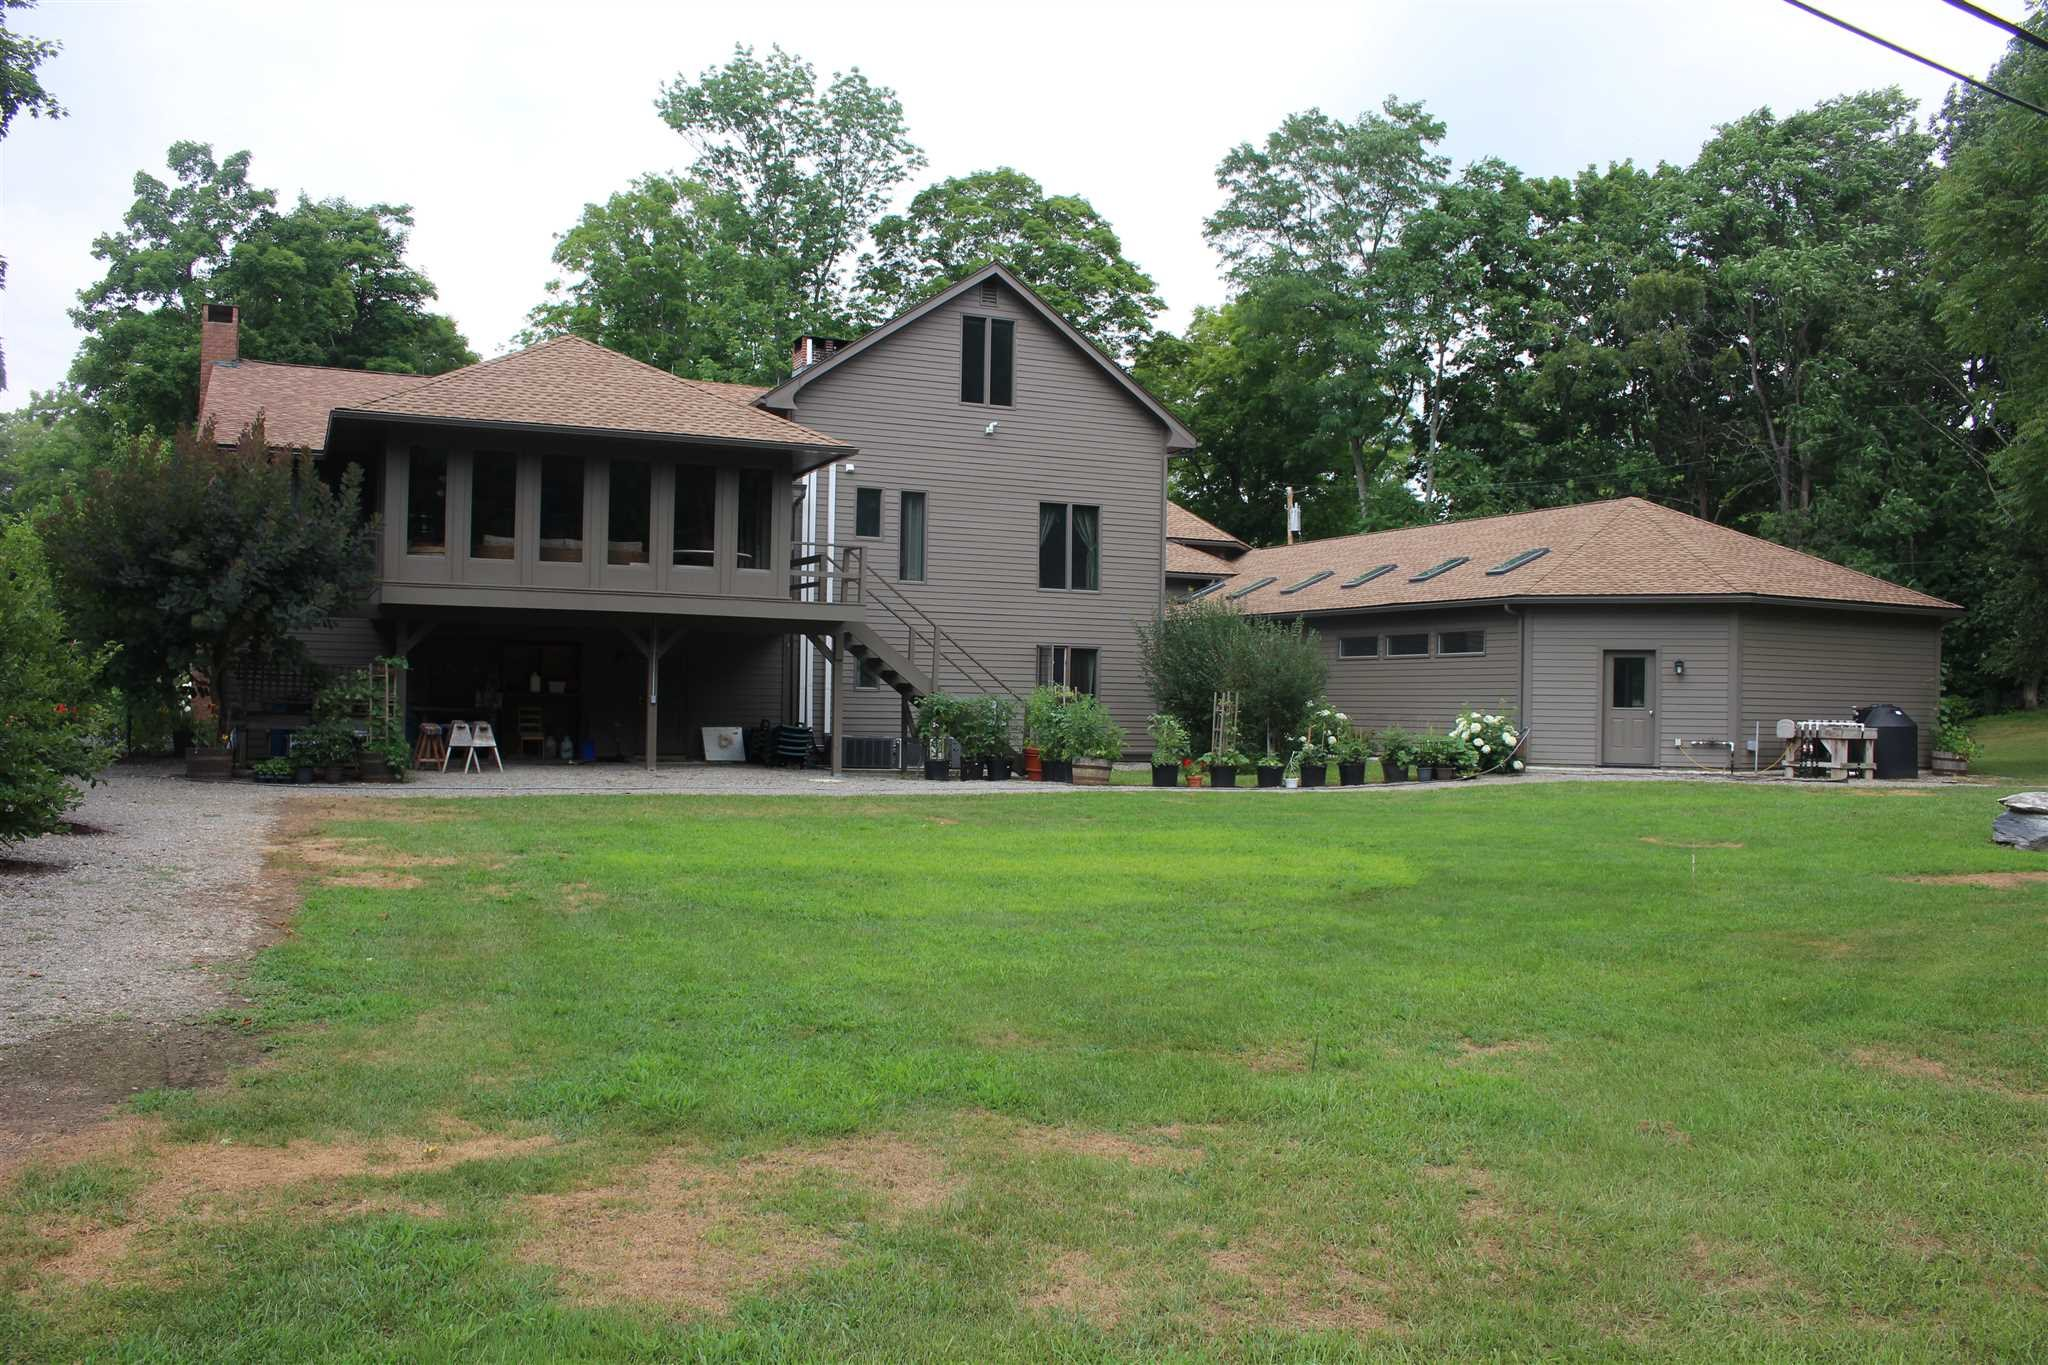 Additional photo for property listing at 486 LEEDSVILLE ROAD 486 LEEDSVILLE ROAD Amenia, New York 12501 United States